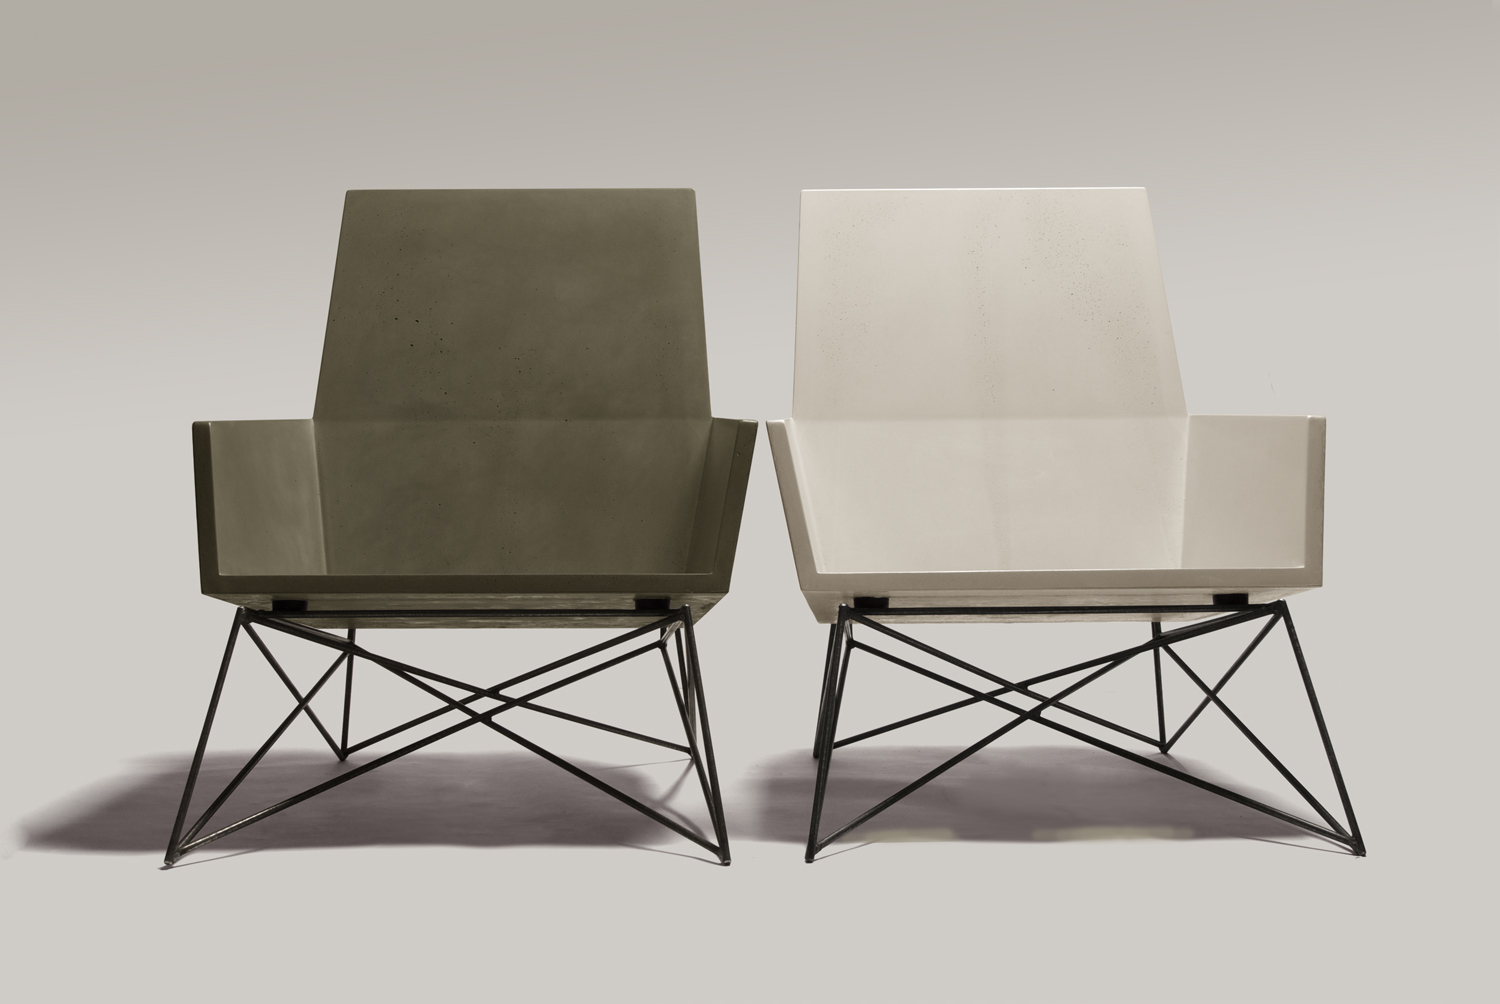 2 modern outdoor concrete chairs, one in natural grey GFRC and the other in white GFRC. These chairs won the award for 'Best Furniture Design' at the Dwell on Design Tradeshow in Los Angeles, CA in 2012